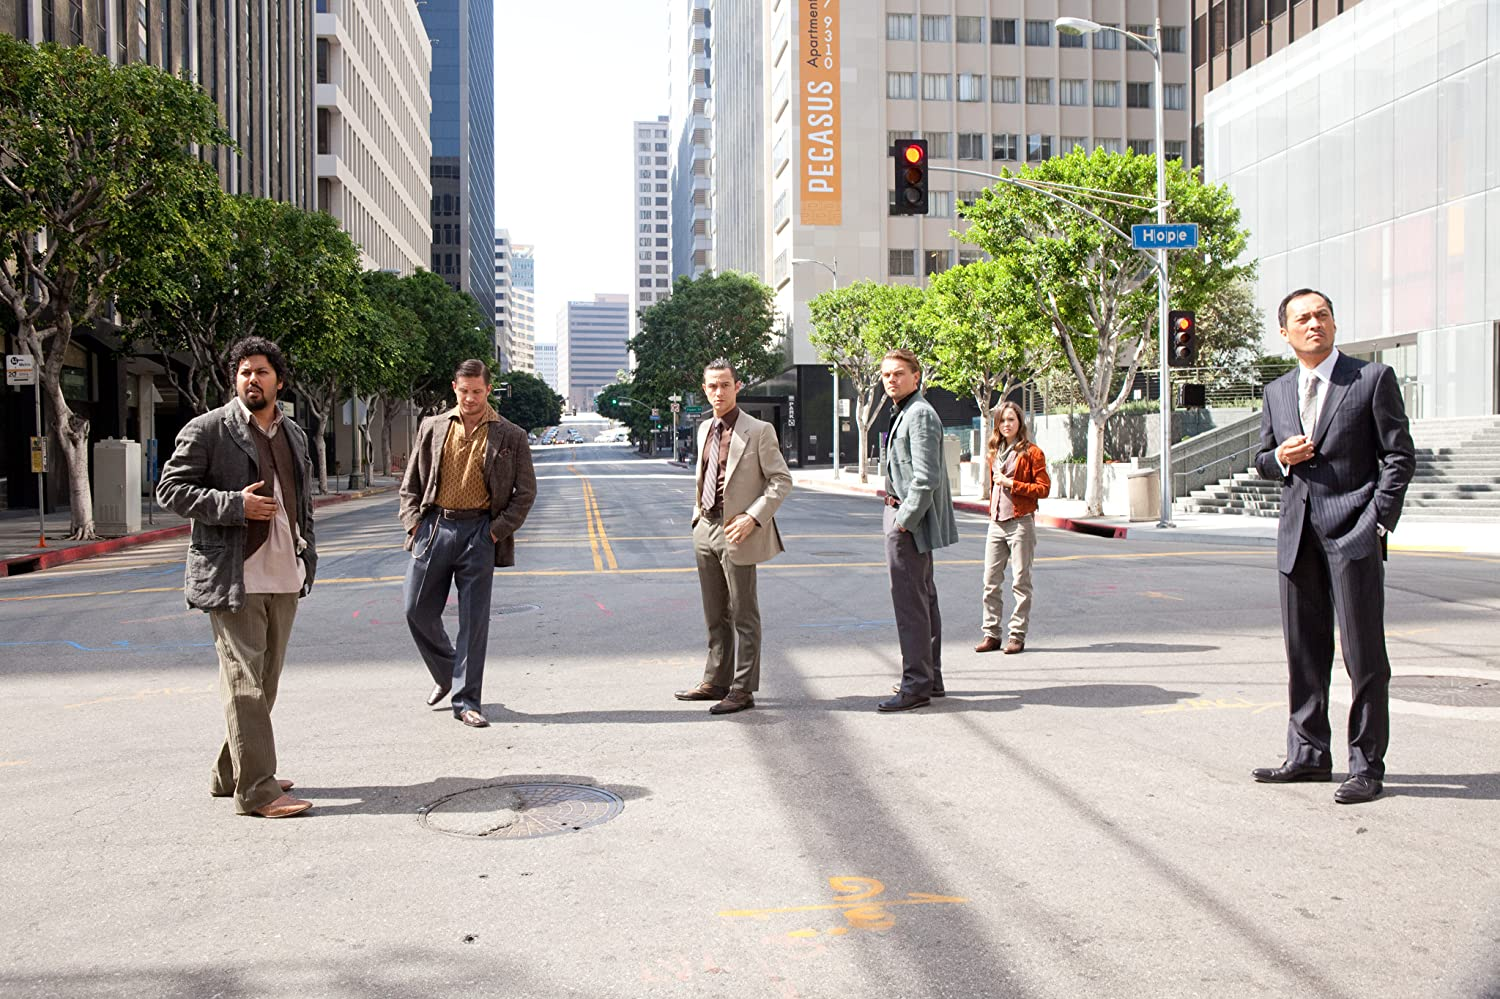 Leonardo DiCaprio, Joseph Gordon-Levitt, Tom Hardy, Ellen Page, Ken Watanabe, and Dileep Rao in Inception (2010)